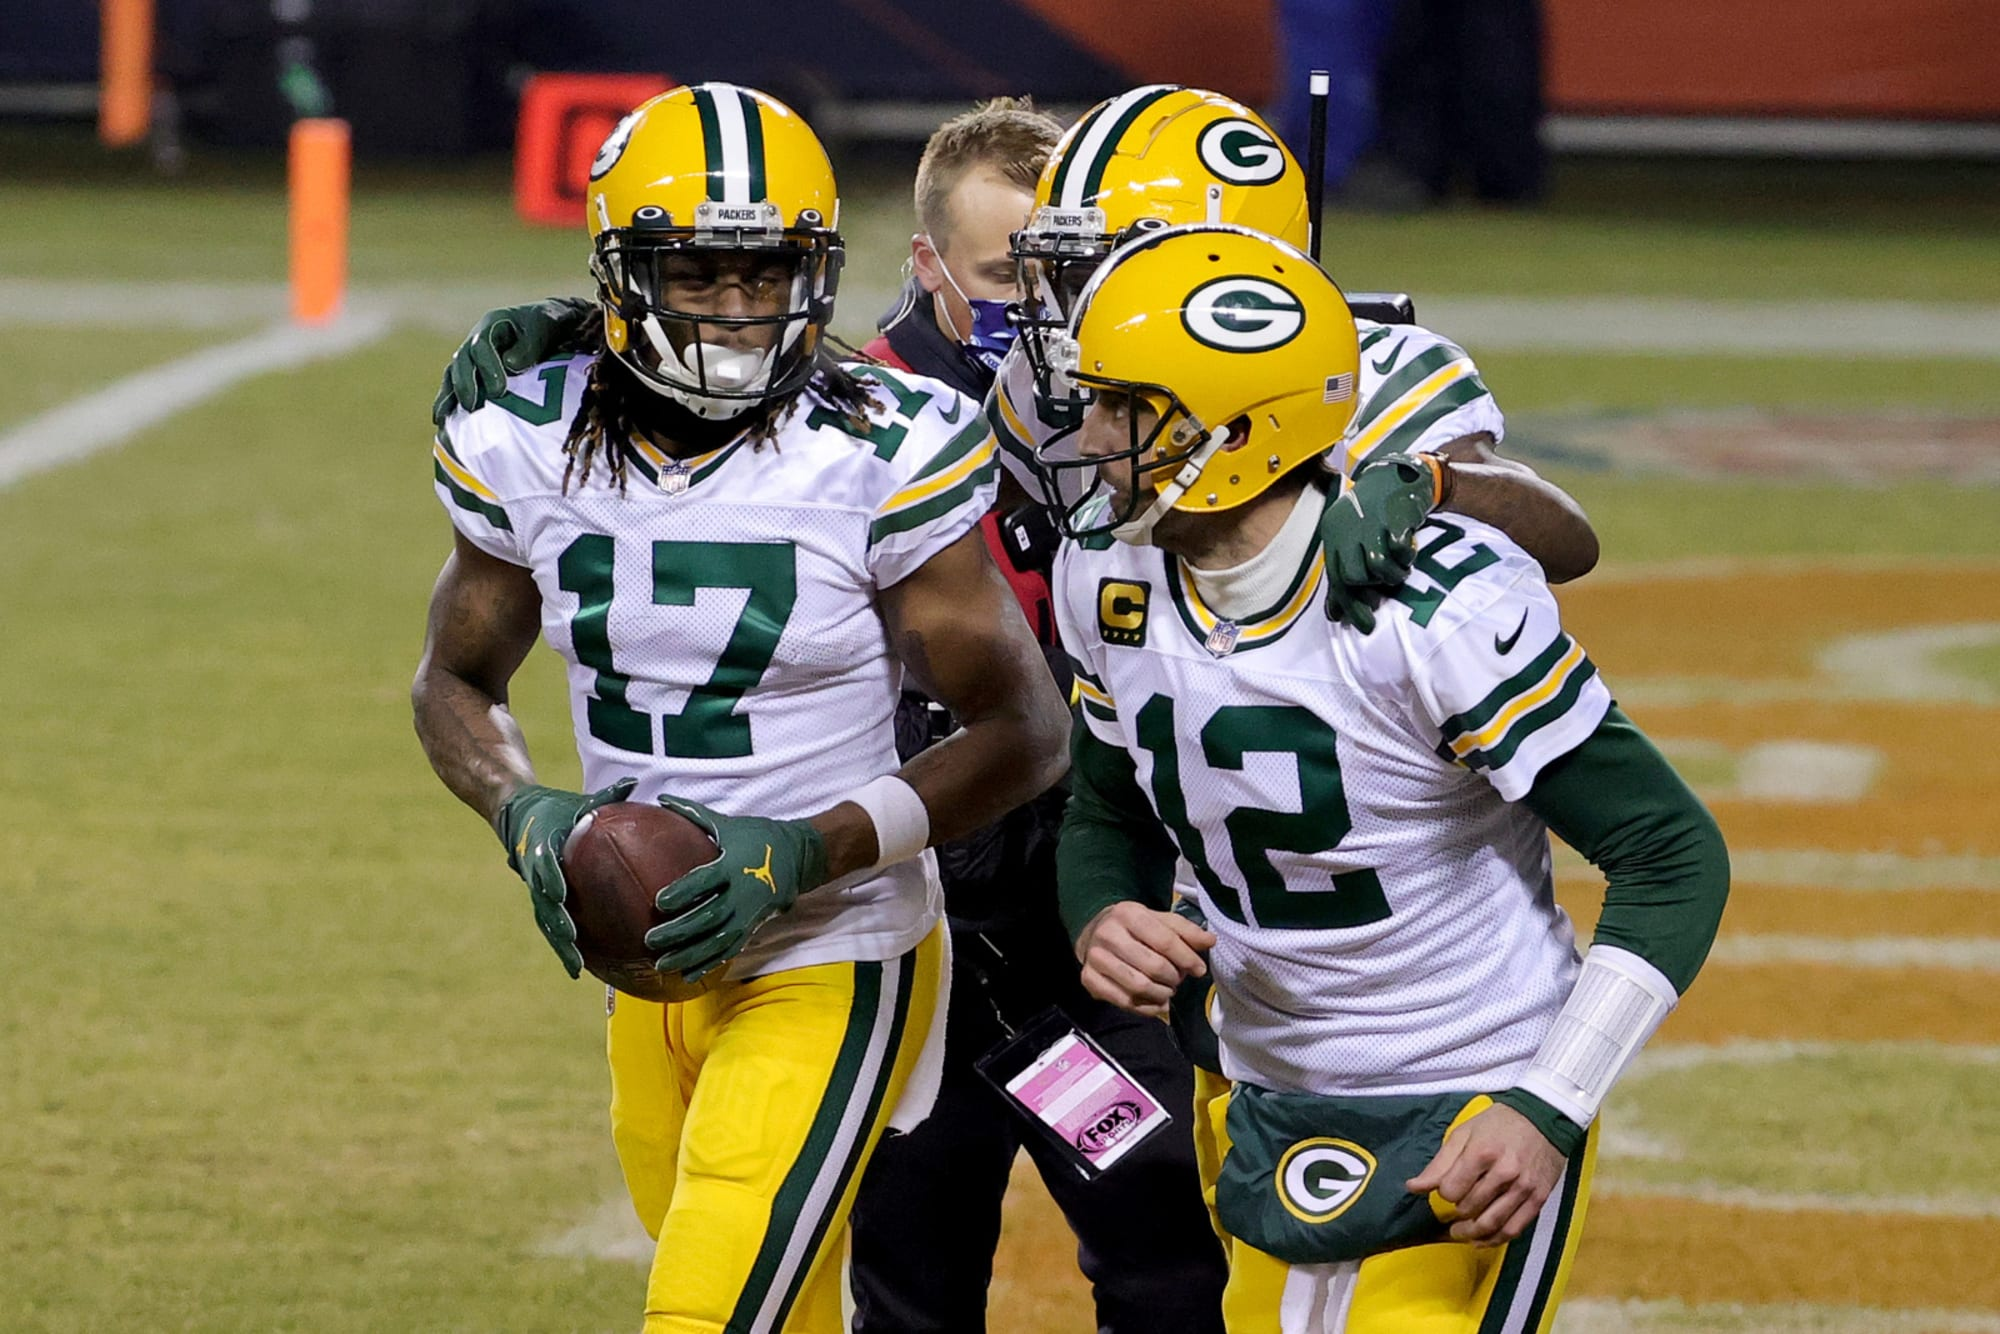 Packers have best duo in NFL, according to CBS Sports rankings